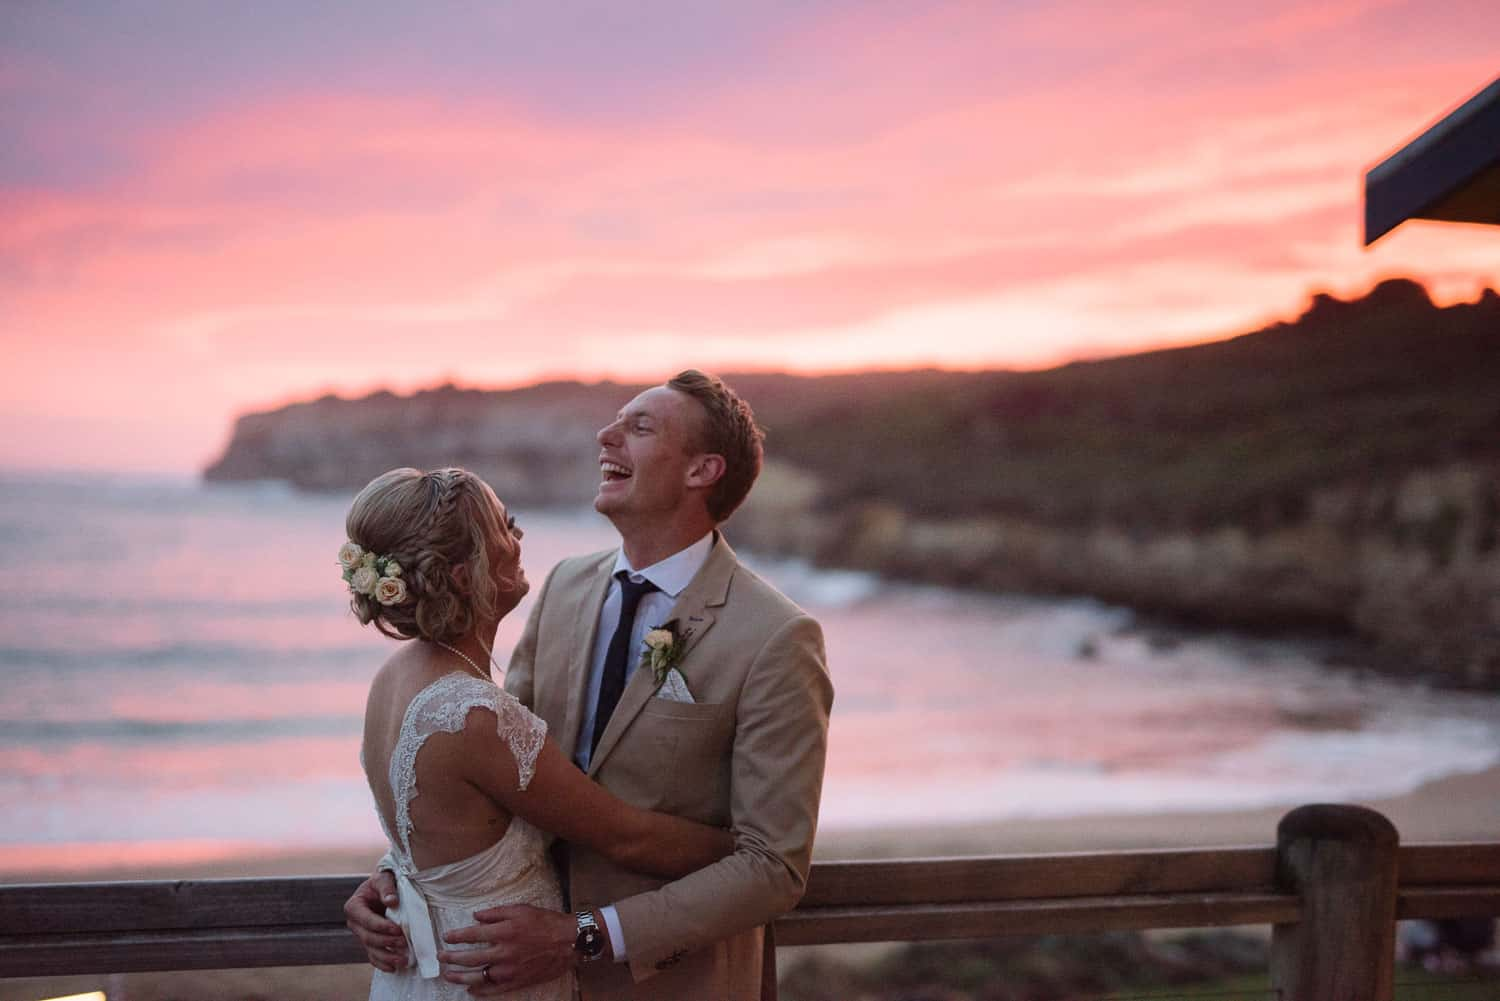 Port Campbell sunset portrait of bride and groom